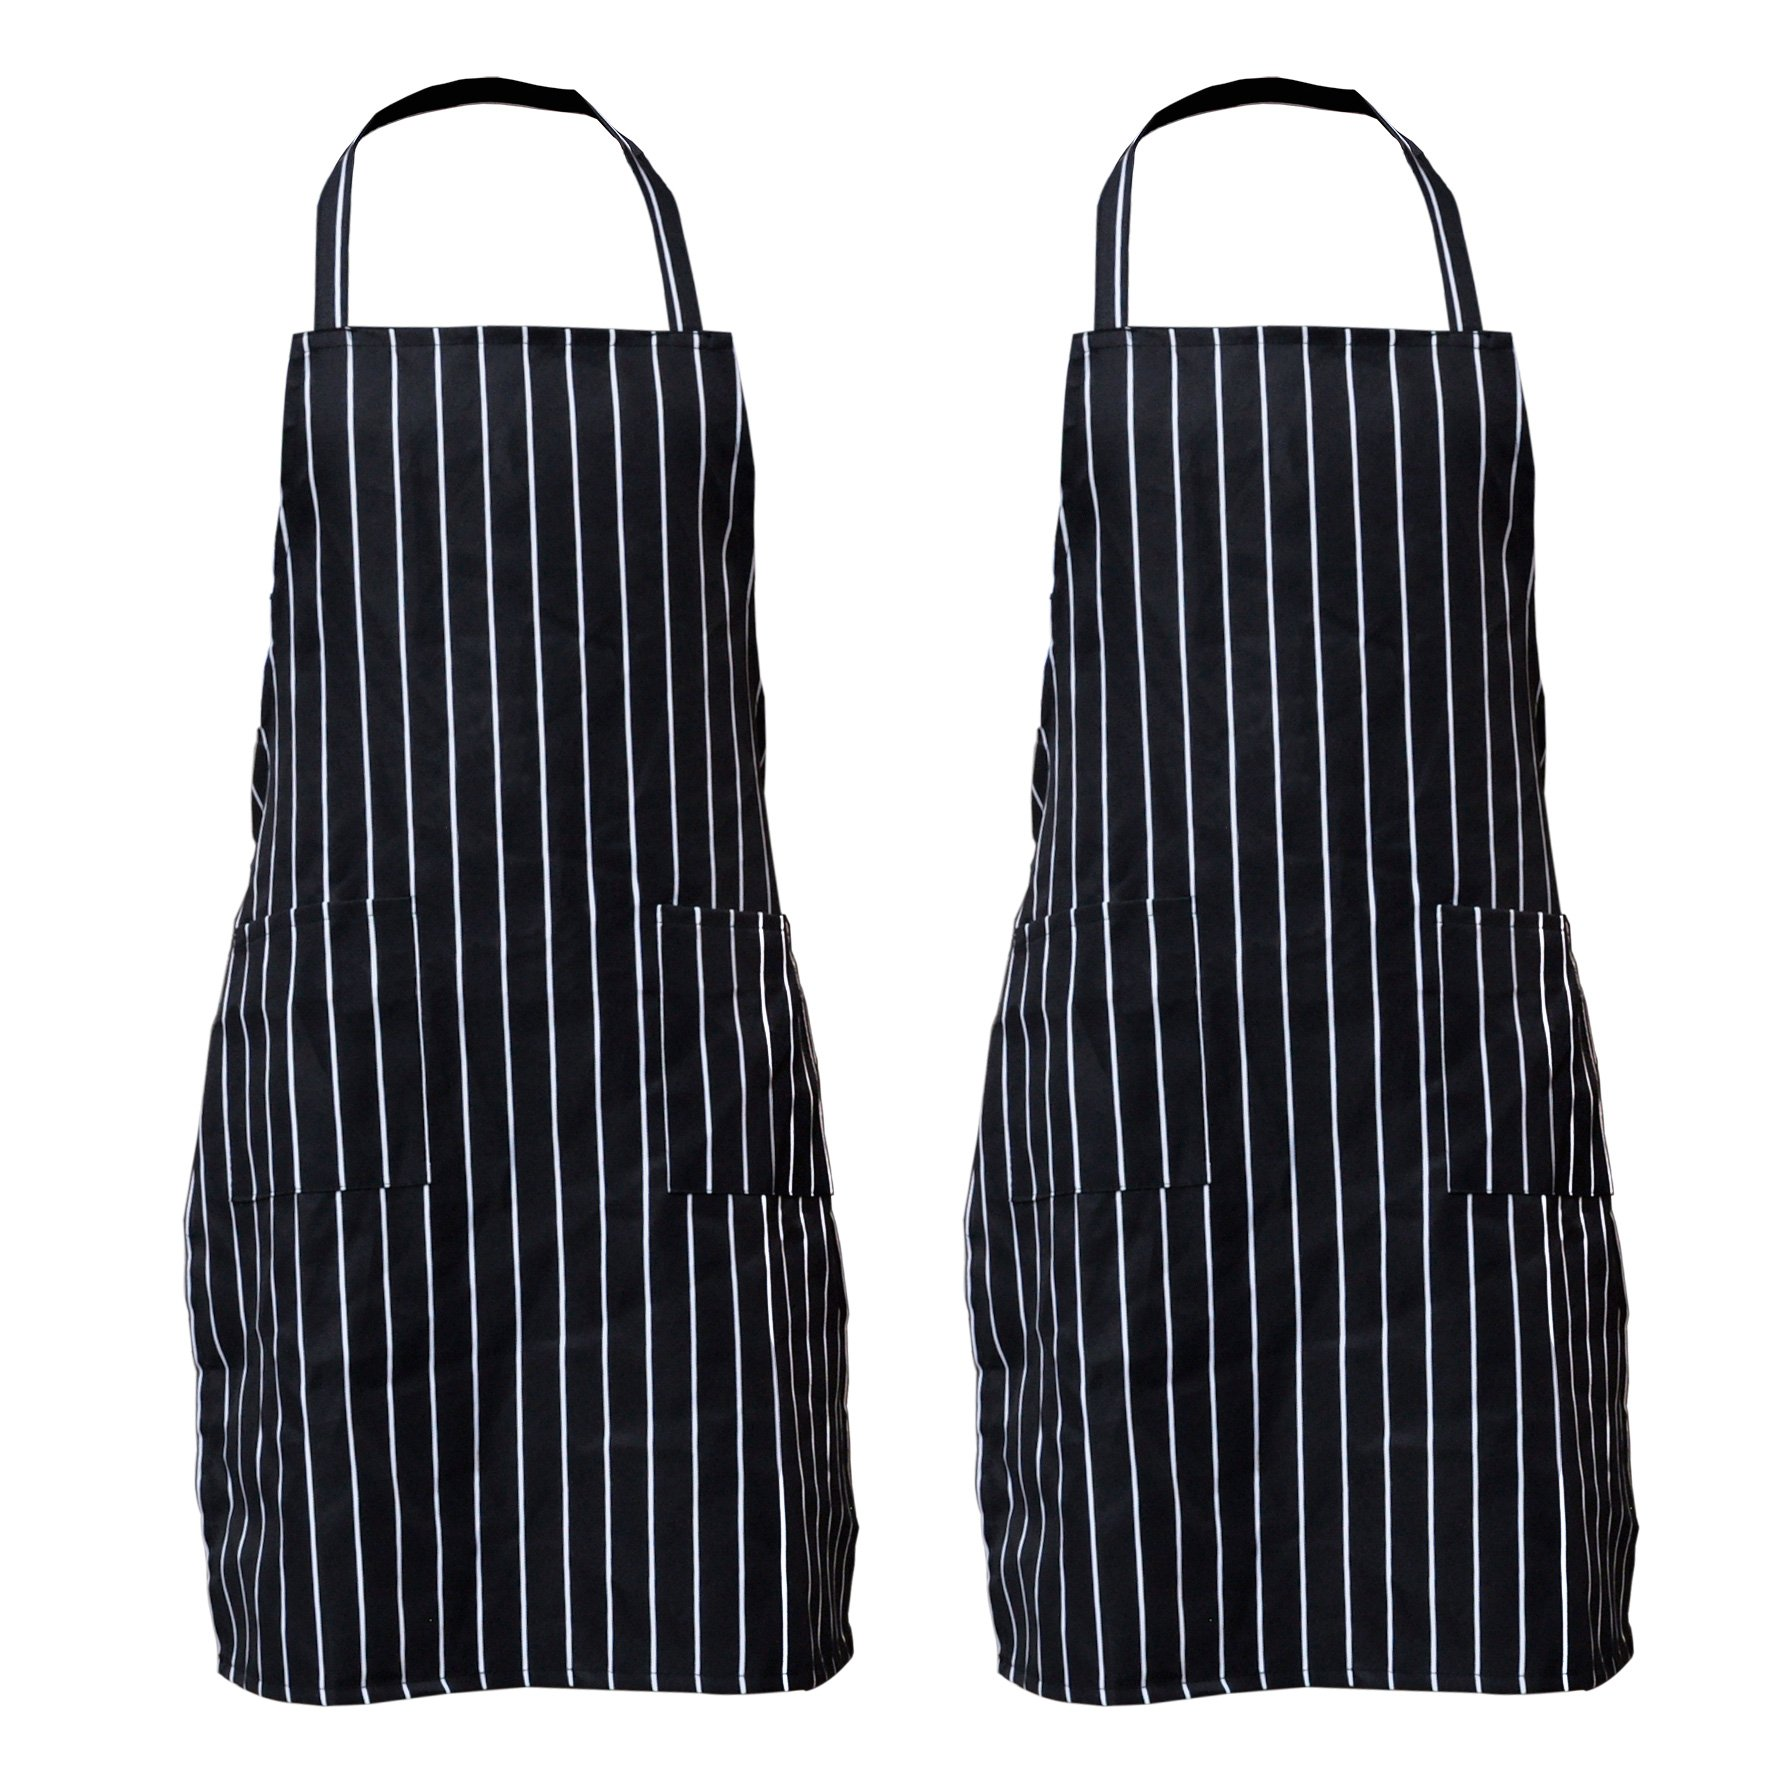 Pinfox 2 Pack Stripe Bib Apron With Pockets Black Cooking Kitchen Chef Apron Gift for Women Men - 30.3 Inch Length by 22 Inch Width